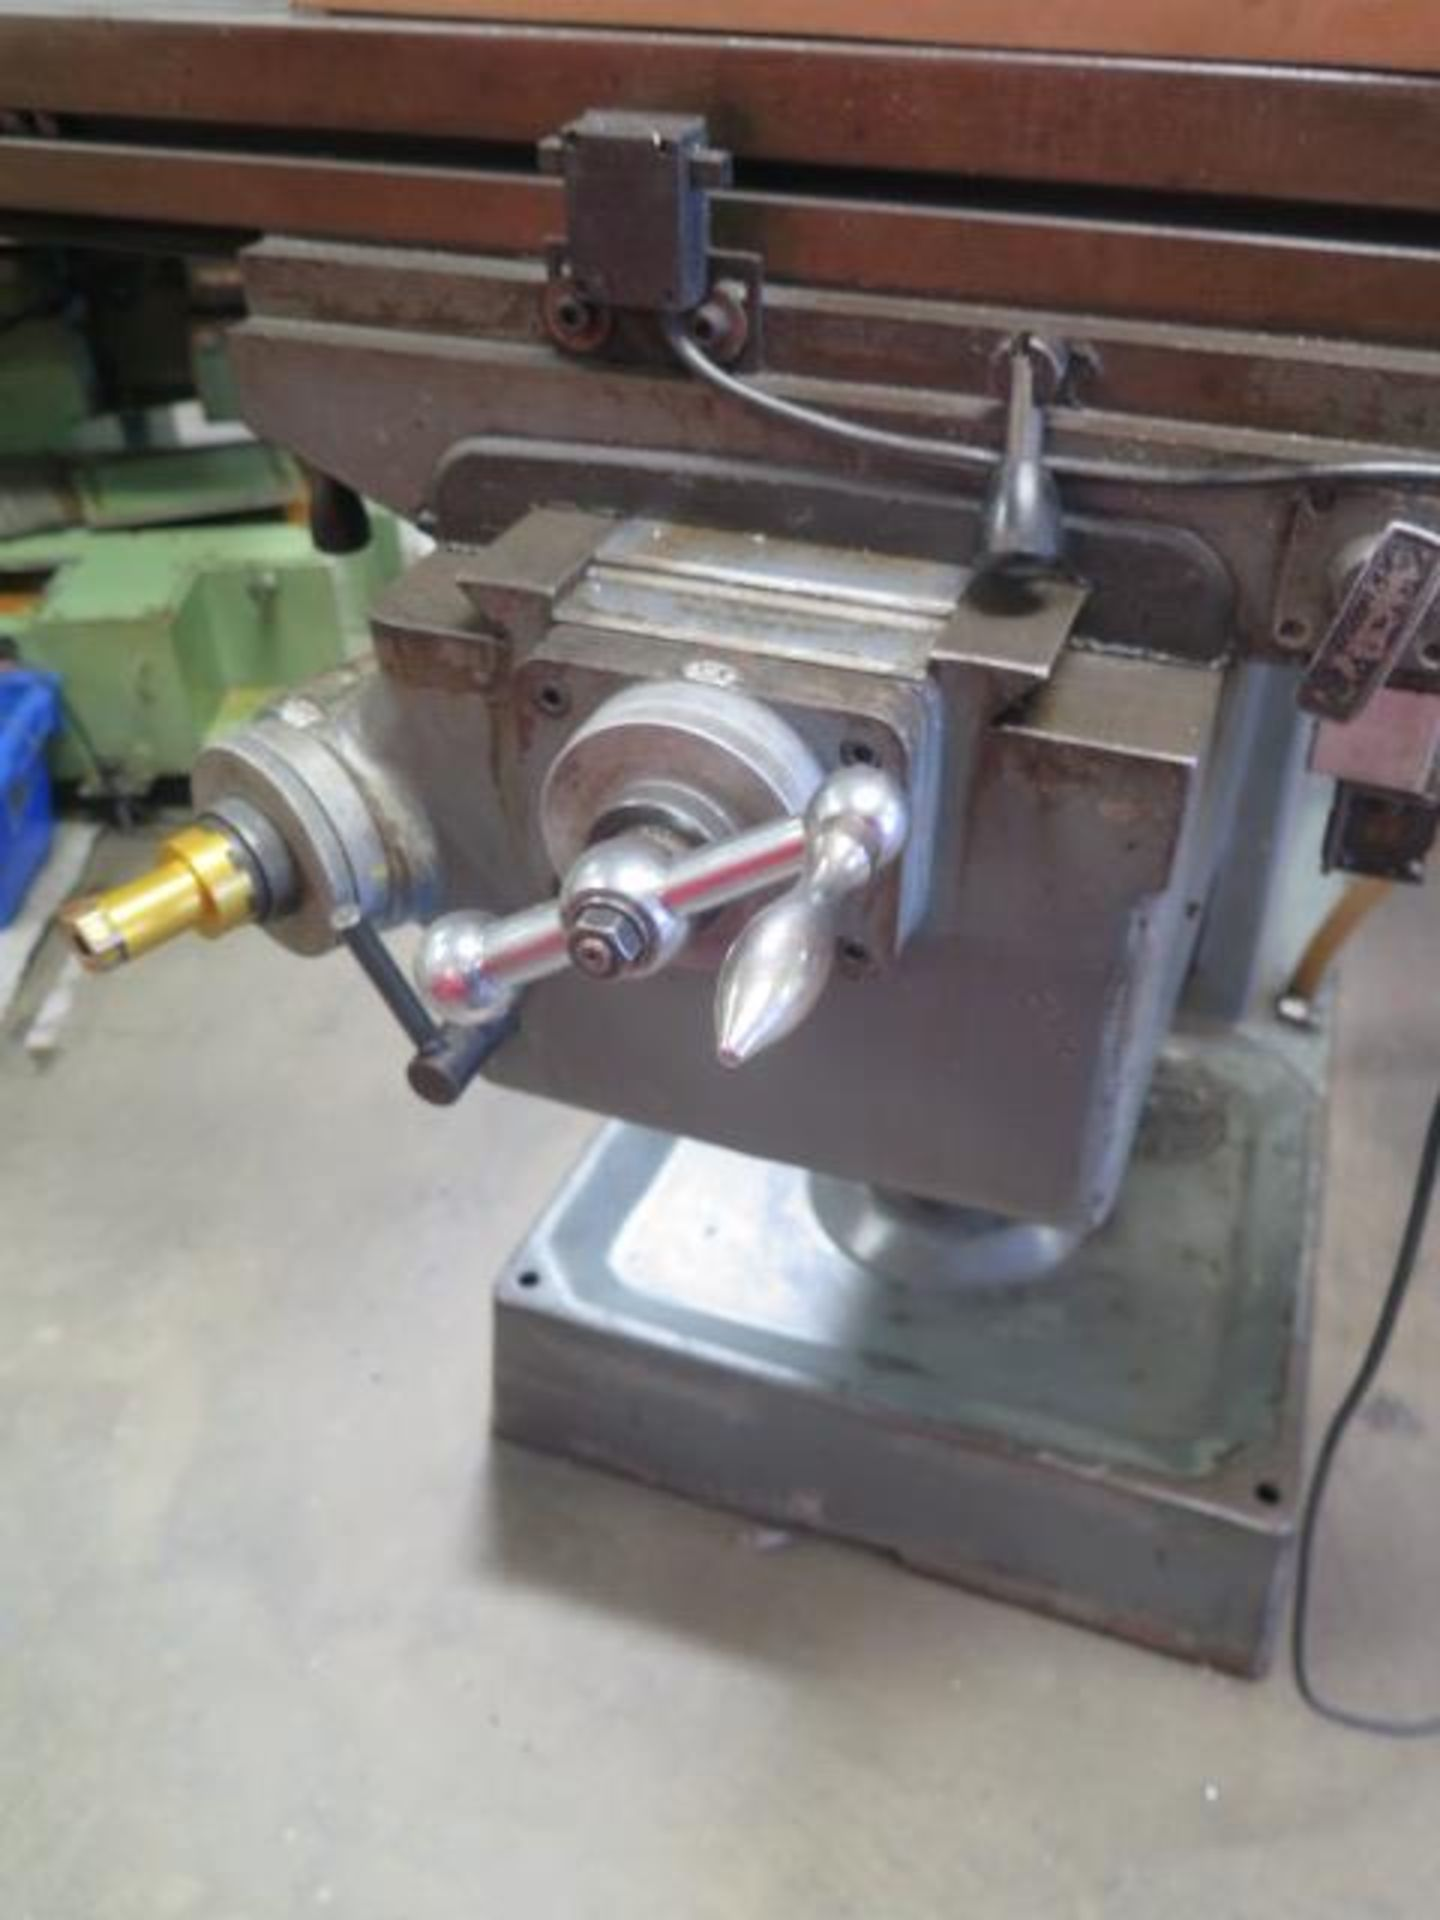 """Lagun FT-1 Vertical Mill w/ Mitutoyo DRO, 55-2940 RPM, 8-Speeds, Power Feed, 9"""" x 42"""" Table (SOLD - Image 12 of 14"""